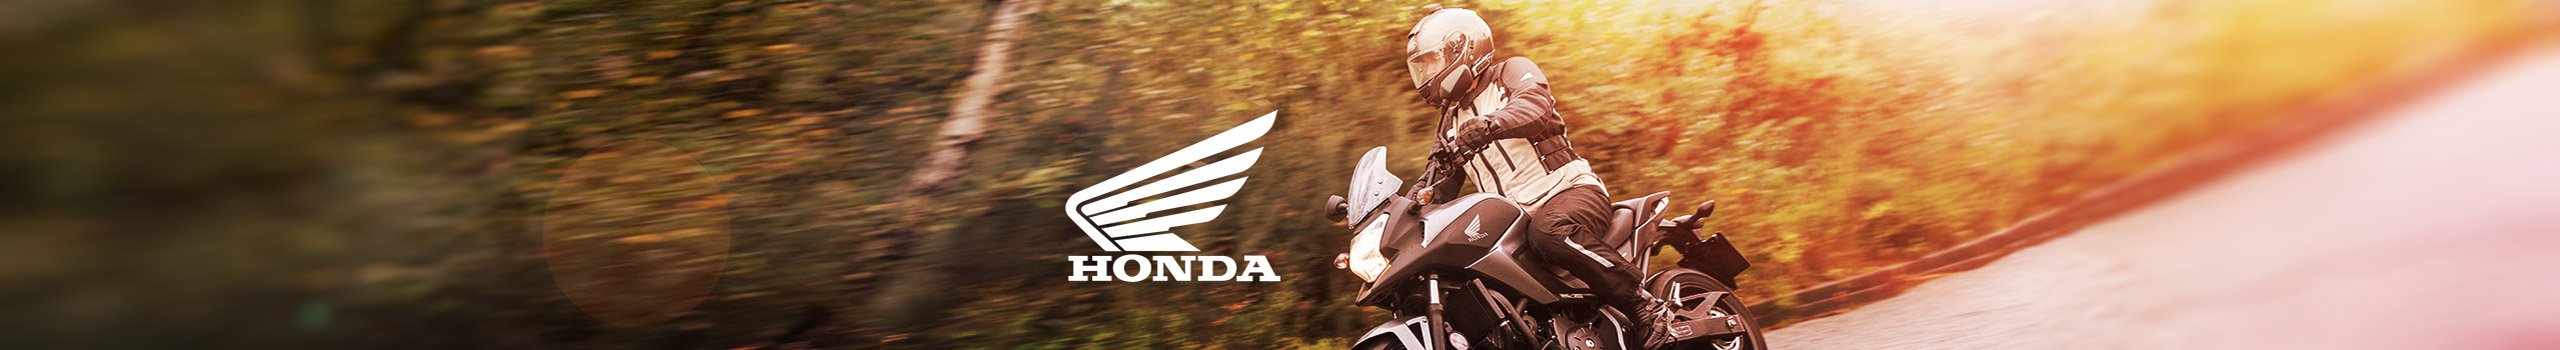 Honda motorcycles for sale | New and used Honda motorbikes | Auto ...